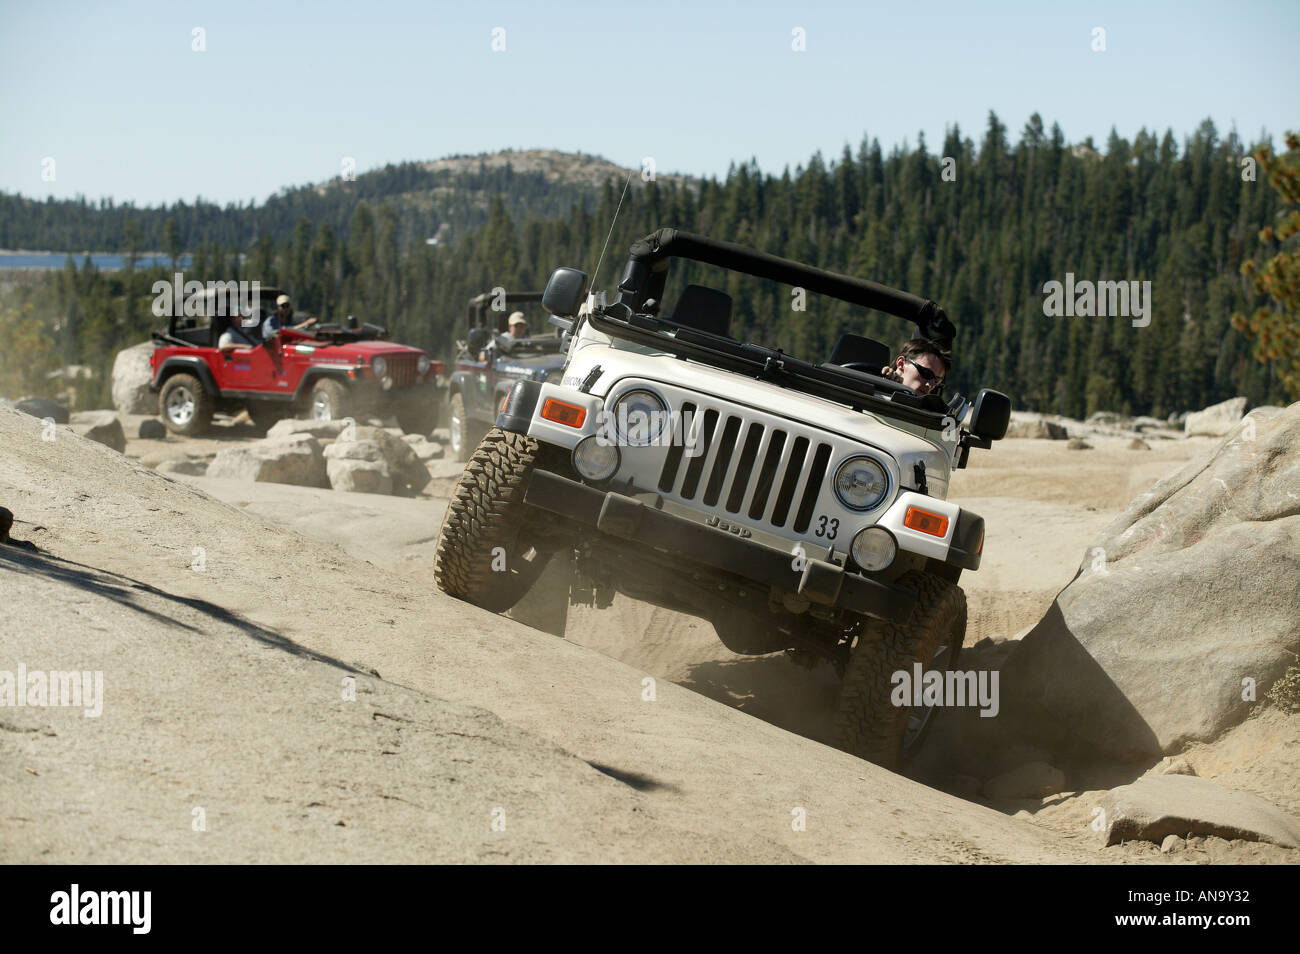 Jeep Trails Jeep Rubicon Trail Stock Photos Jeep Rubicon Trail Stock Images